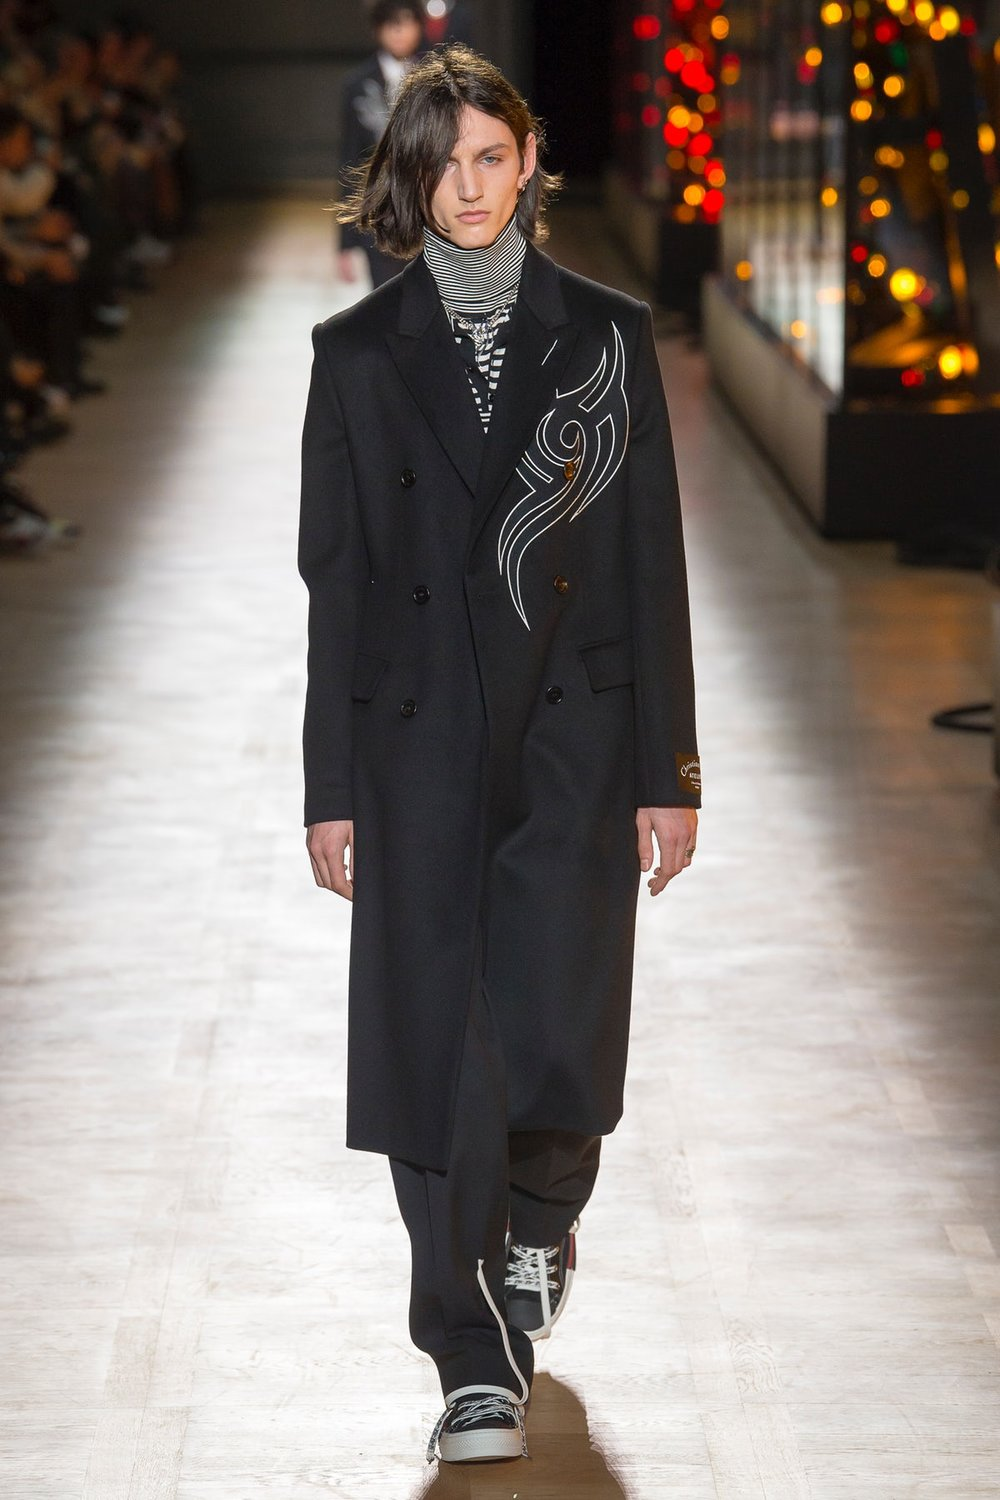 dior_homme_look_10_menswear_autumn_2018.jpeg